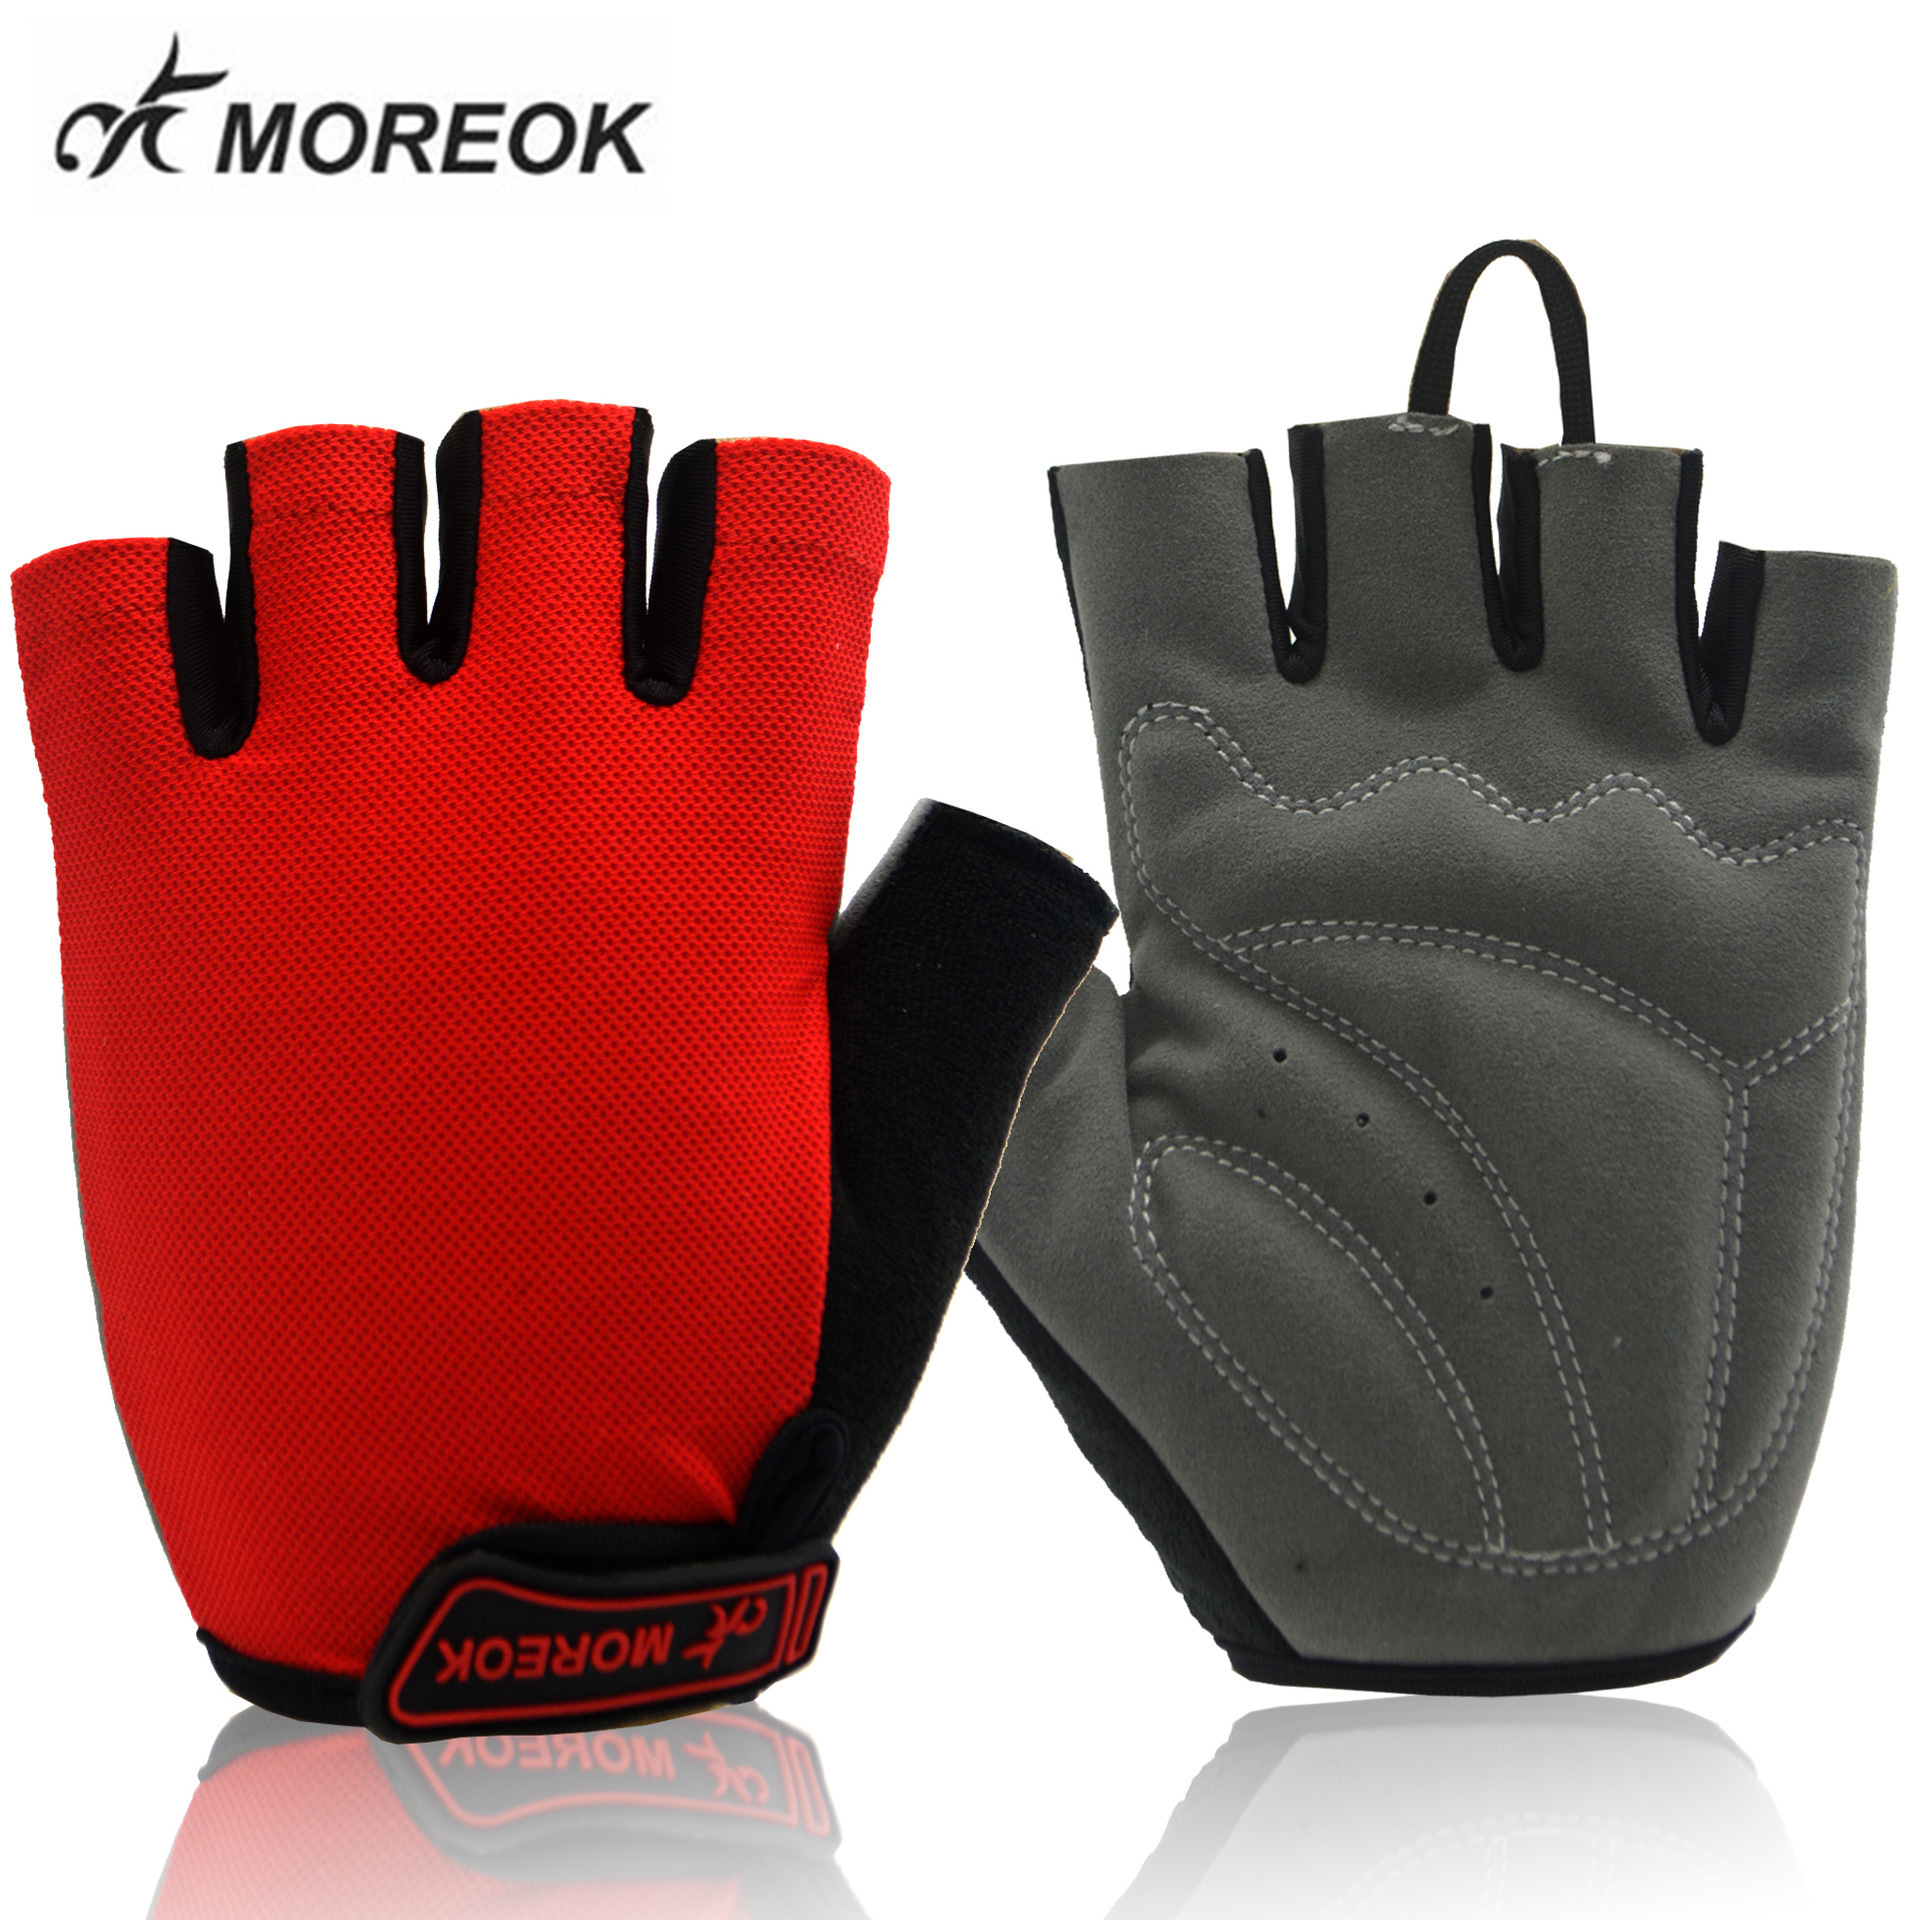 MOREOK Men Women Cycling Gloves Half Finger Bike Shockproof Breathable MTB Road Mountain Bicycle BMX GYM Sport